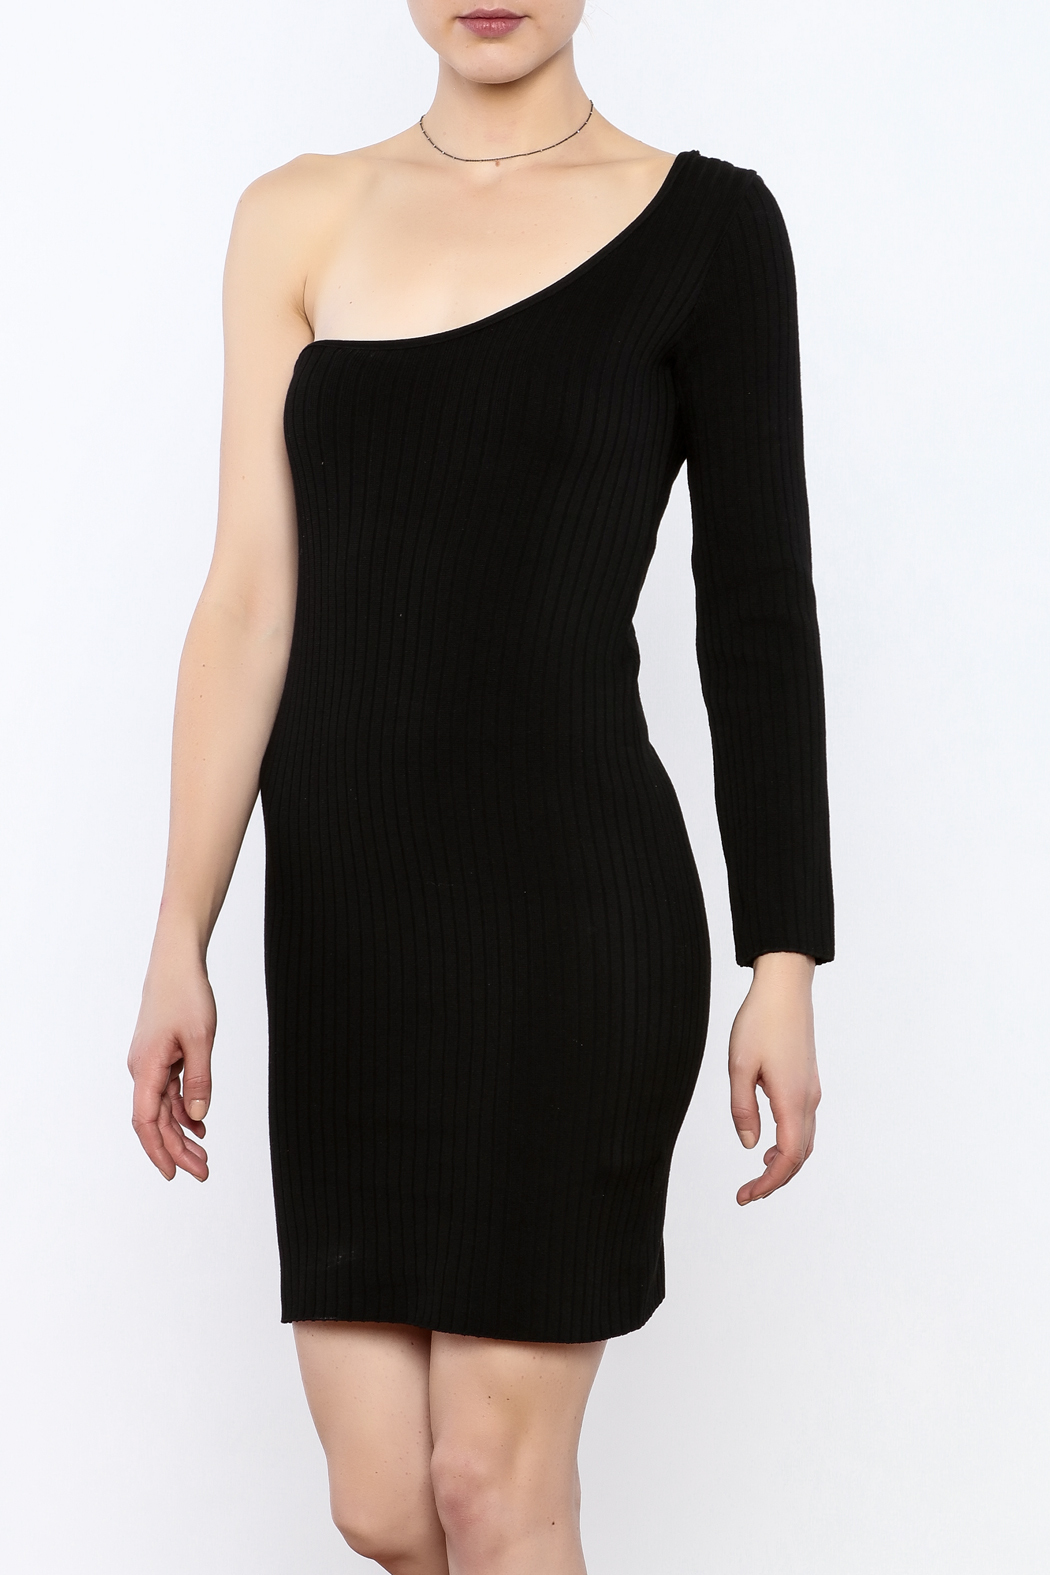 Cleo Black Knit Dress - Main Image